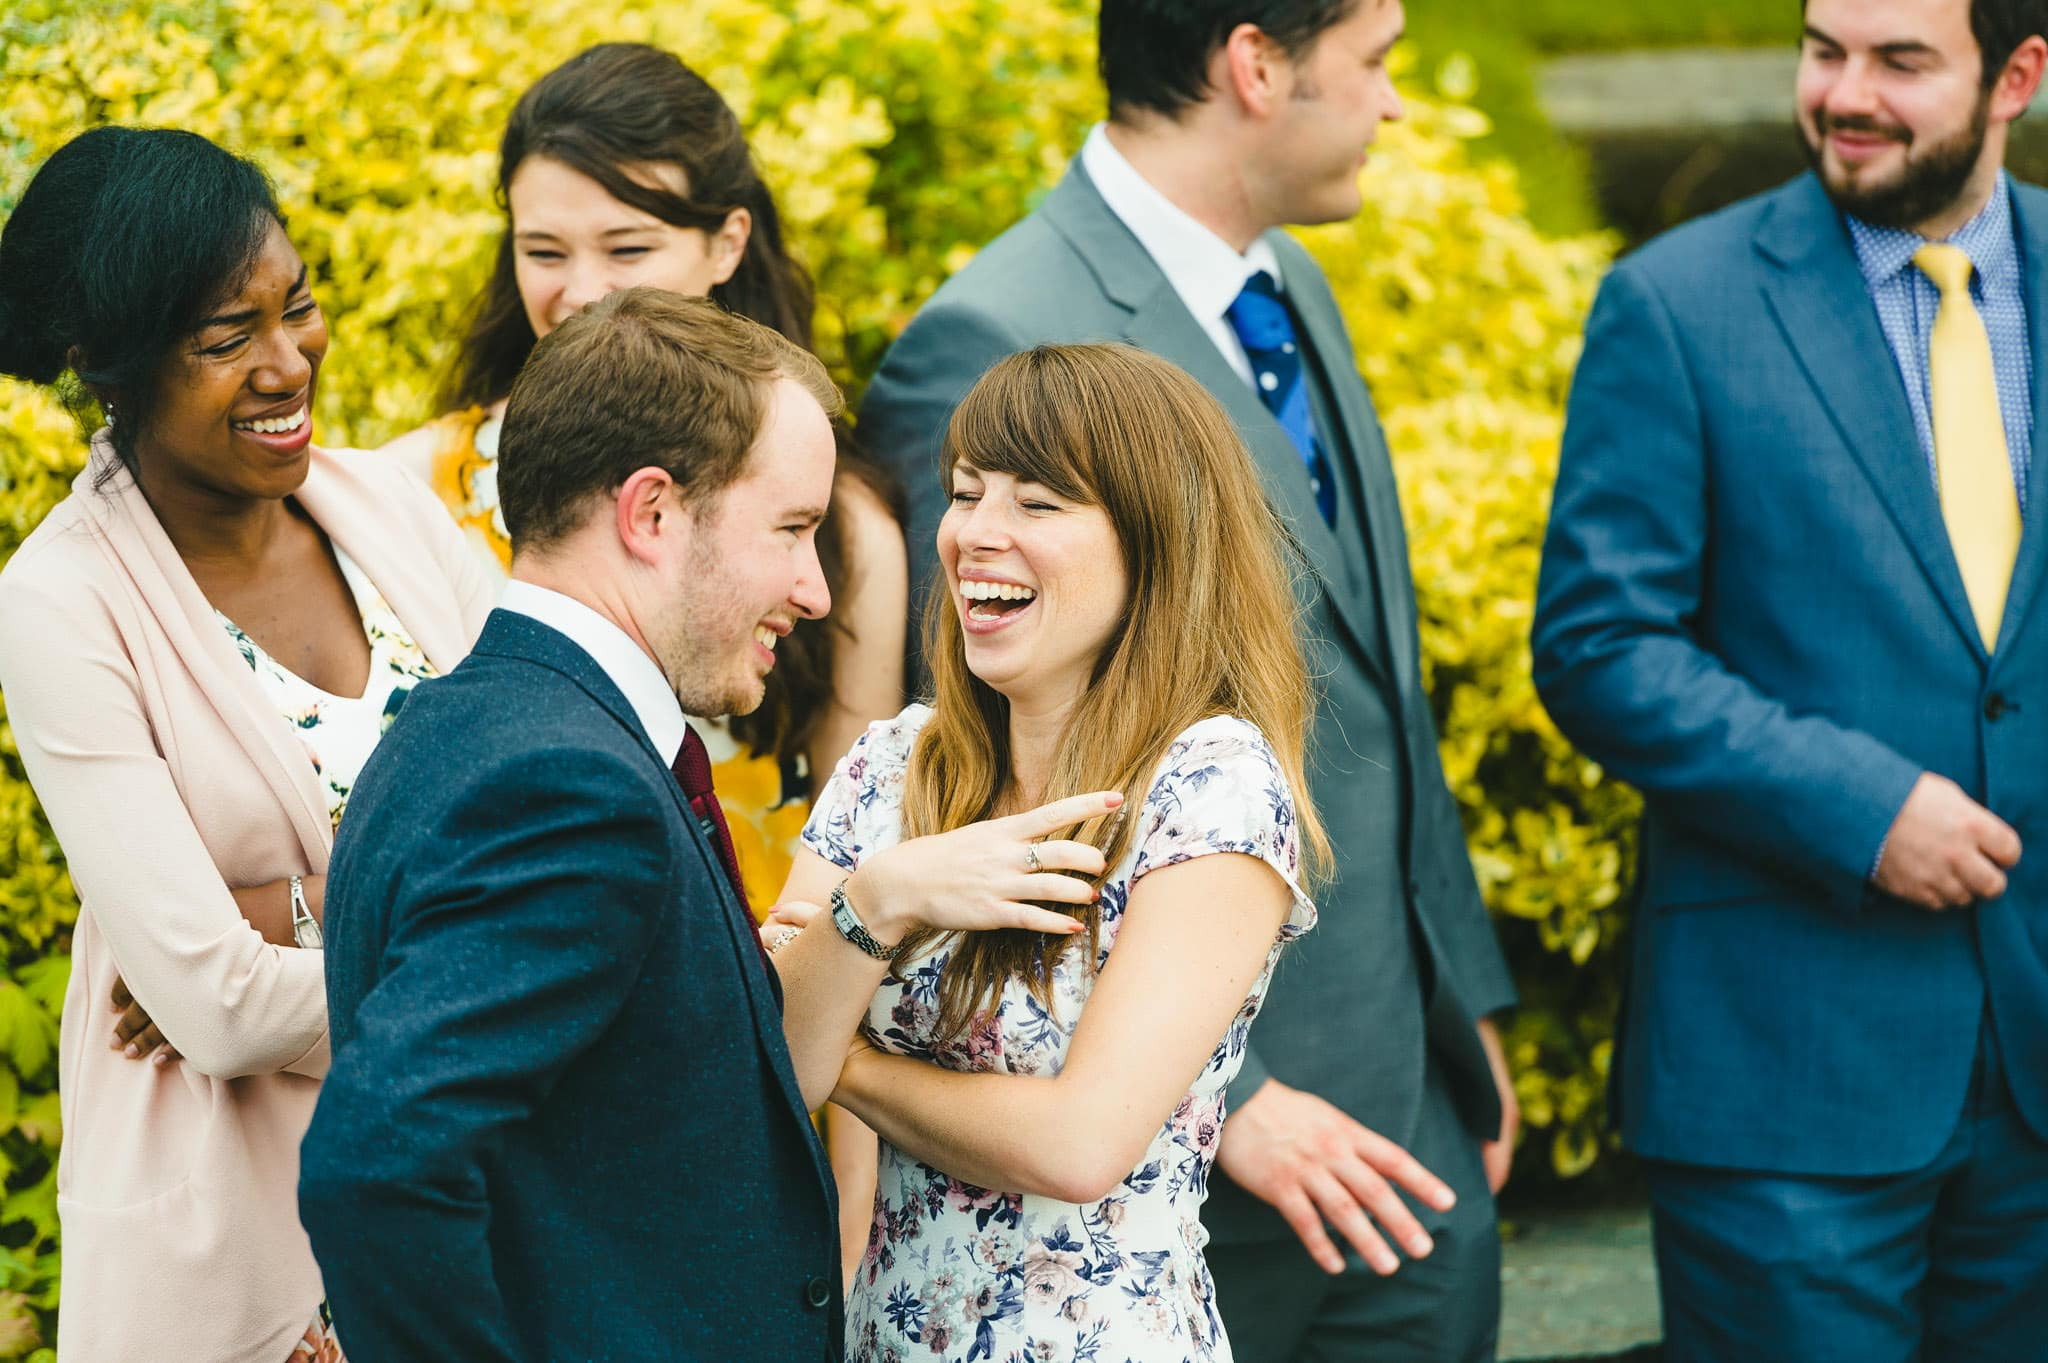 Wedding photography at Y Talbot Hotel in Tregaron, Wales | Tina + Phil 55